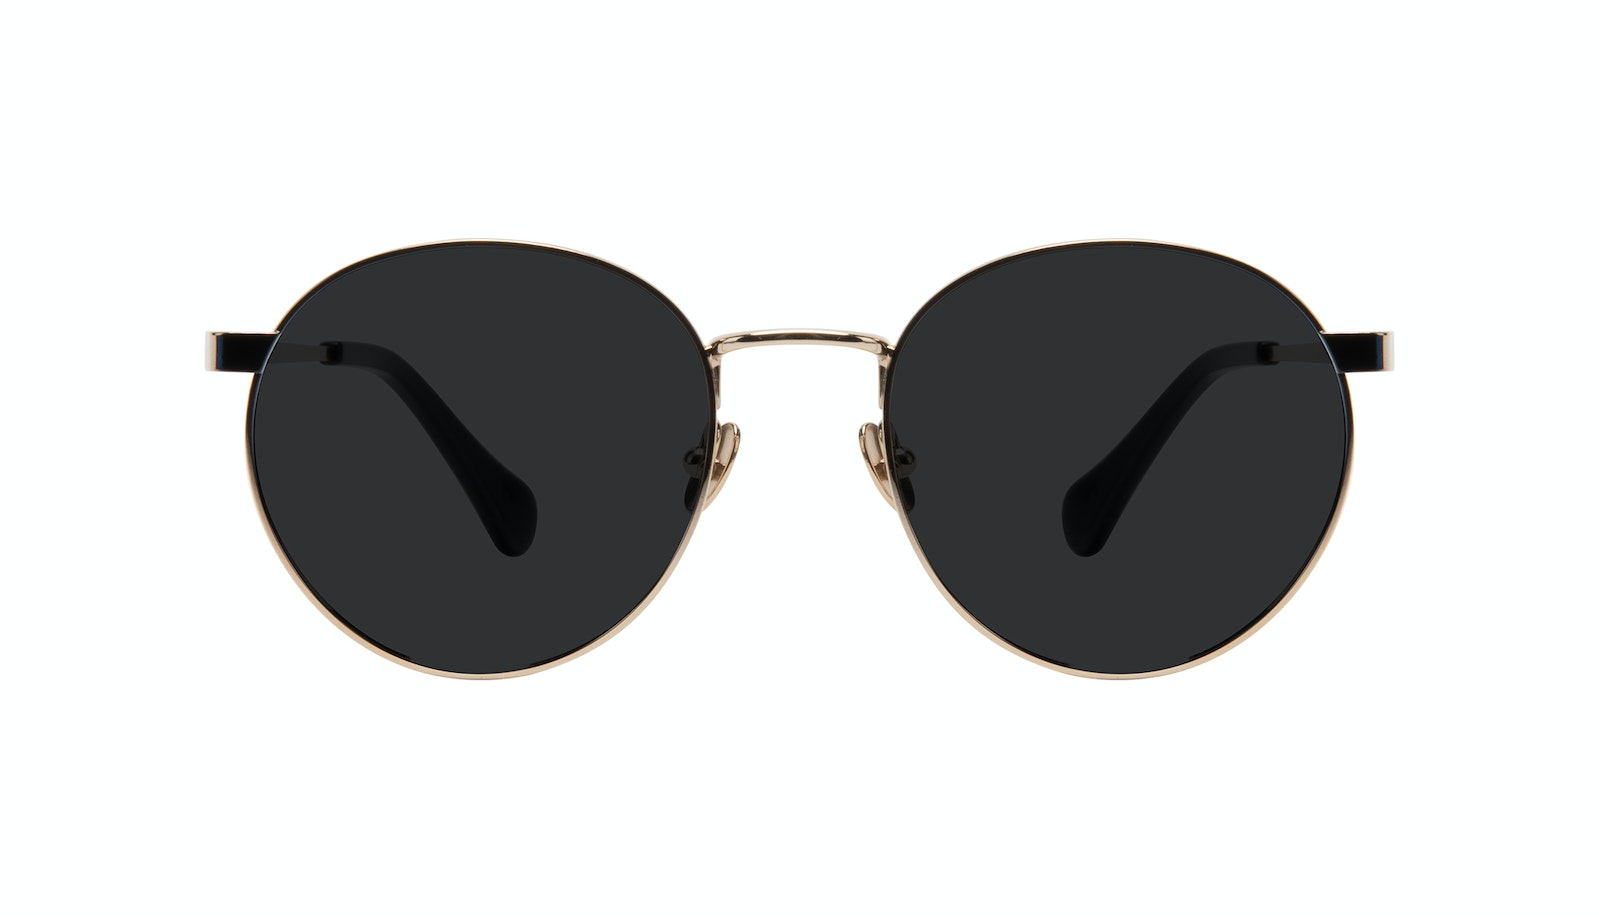 Affordable Fashion Glasses Round Sunglasses Women Foundry Deep Gold